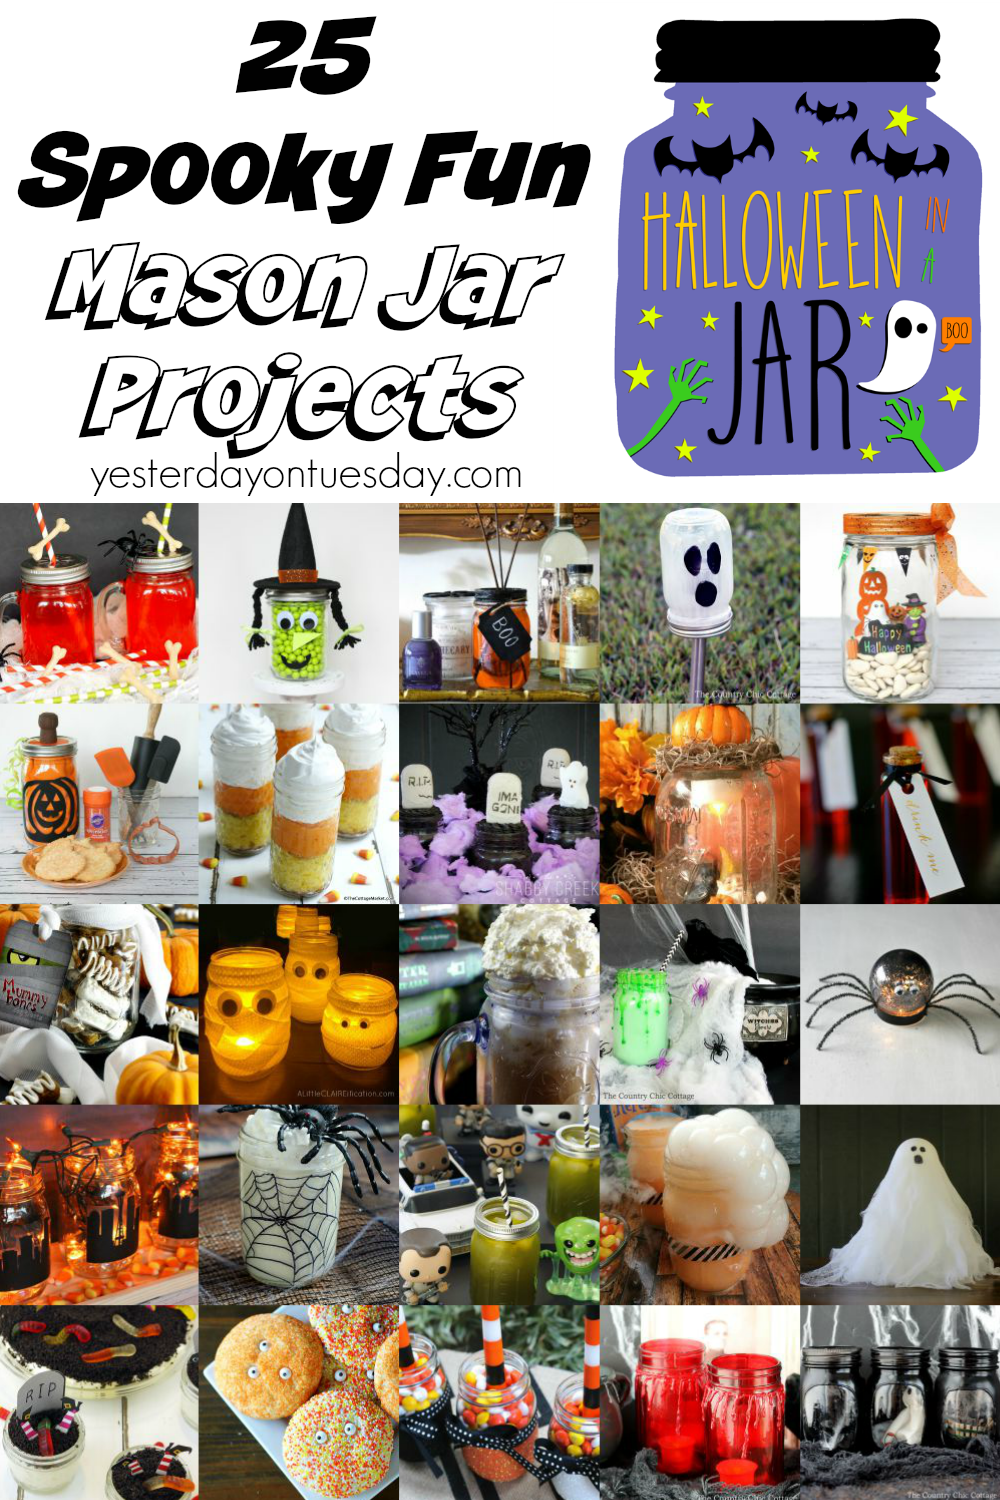 Mason Jar Projects 25 Spooky Fun Mason Jar Projects Yesterday On Tuesday